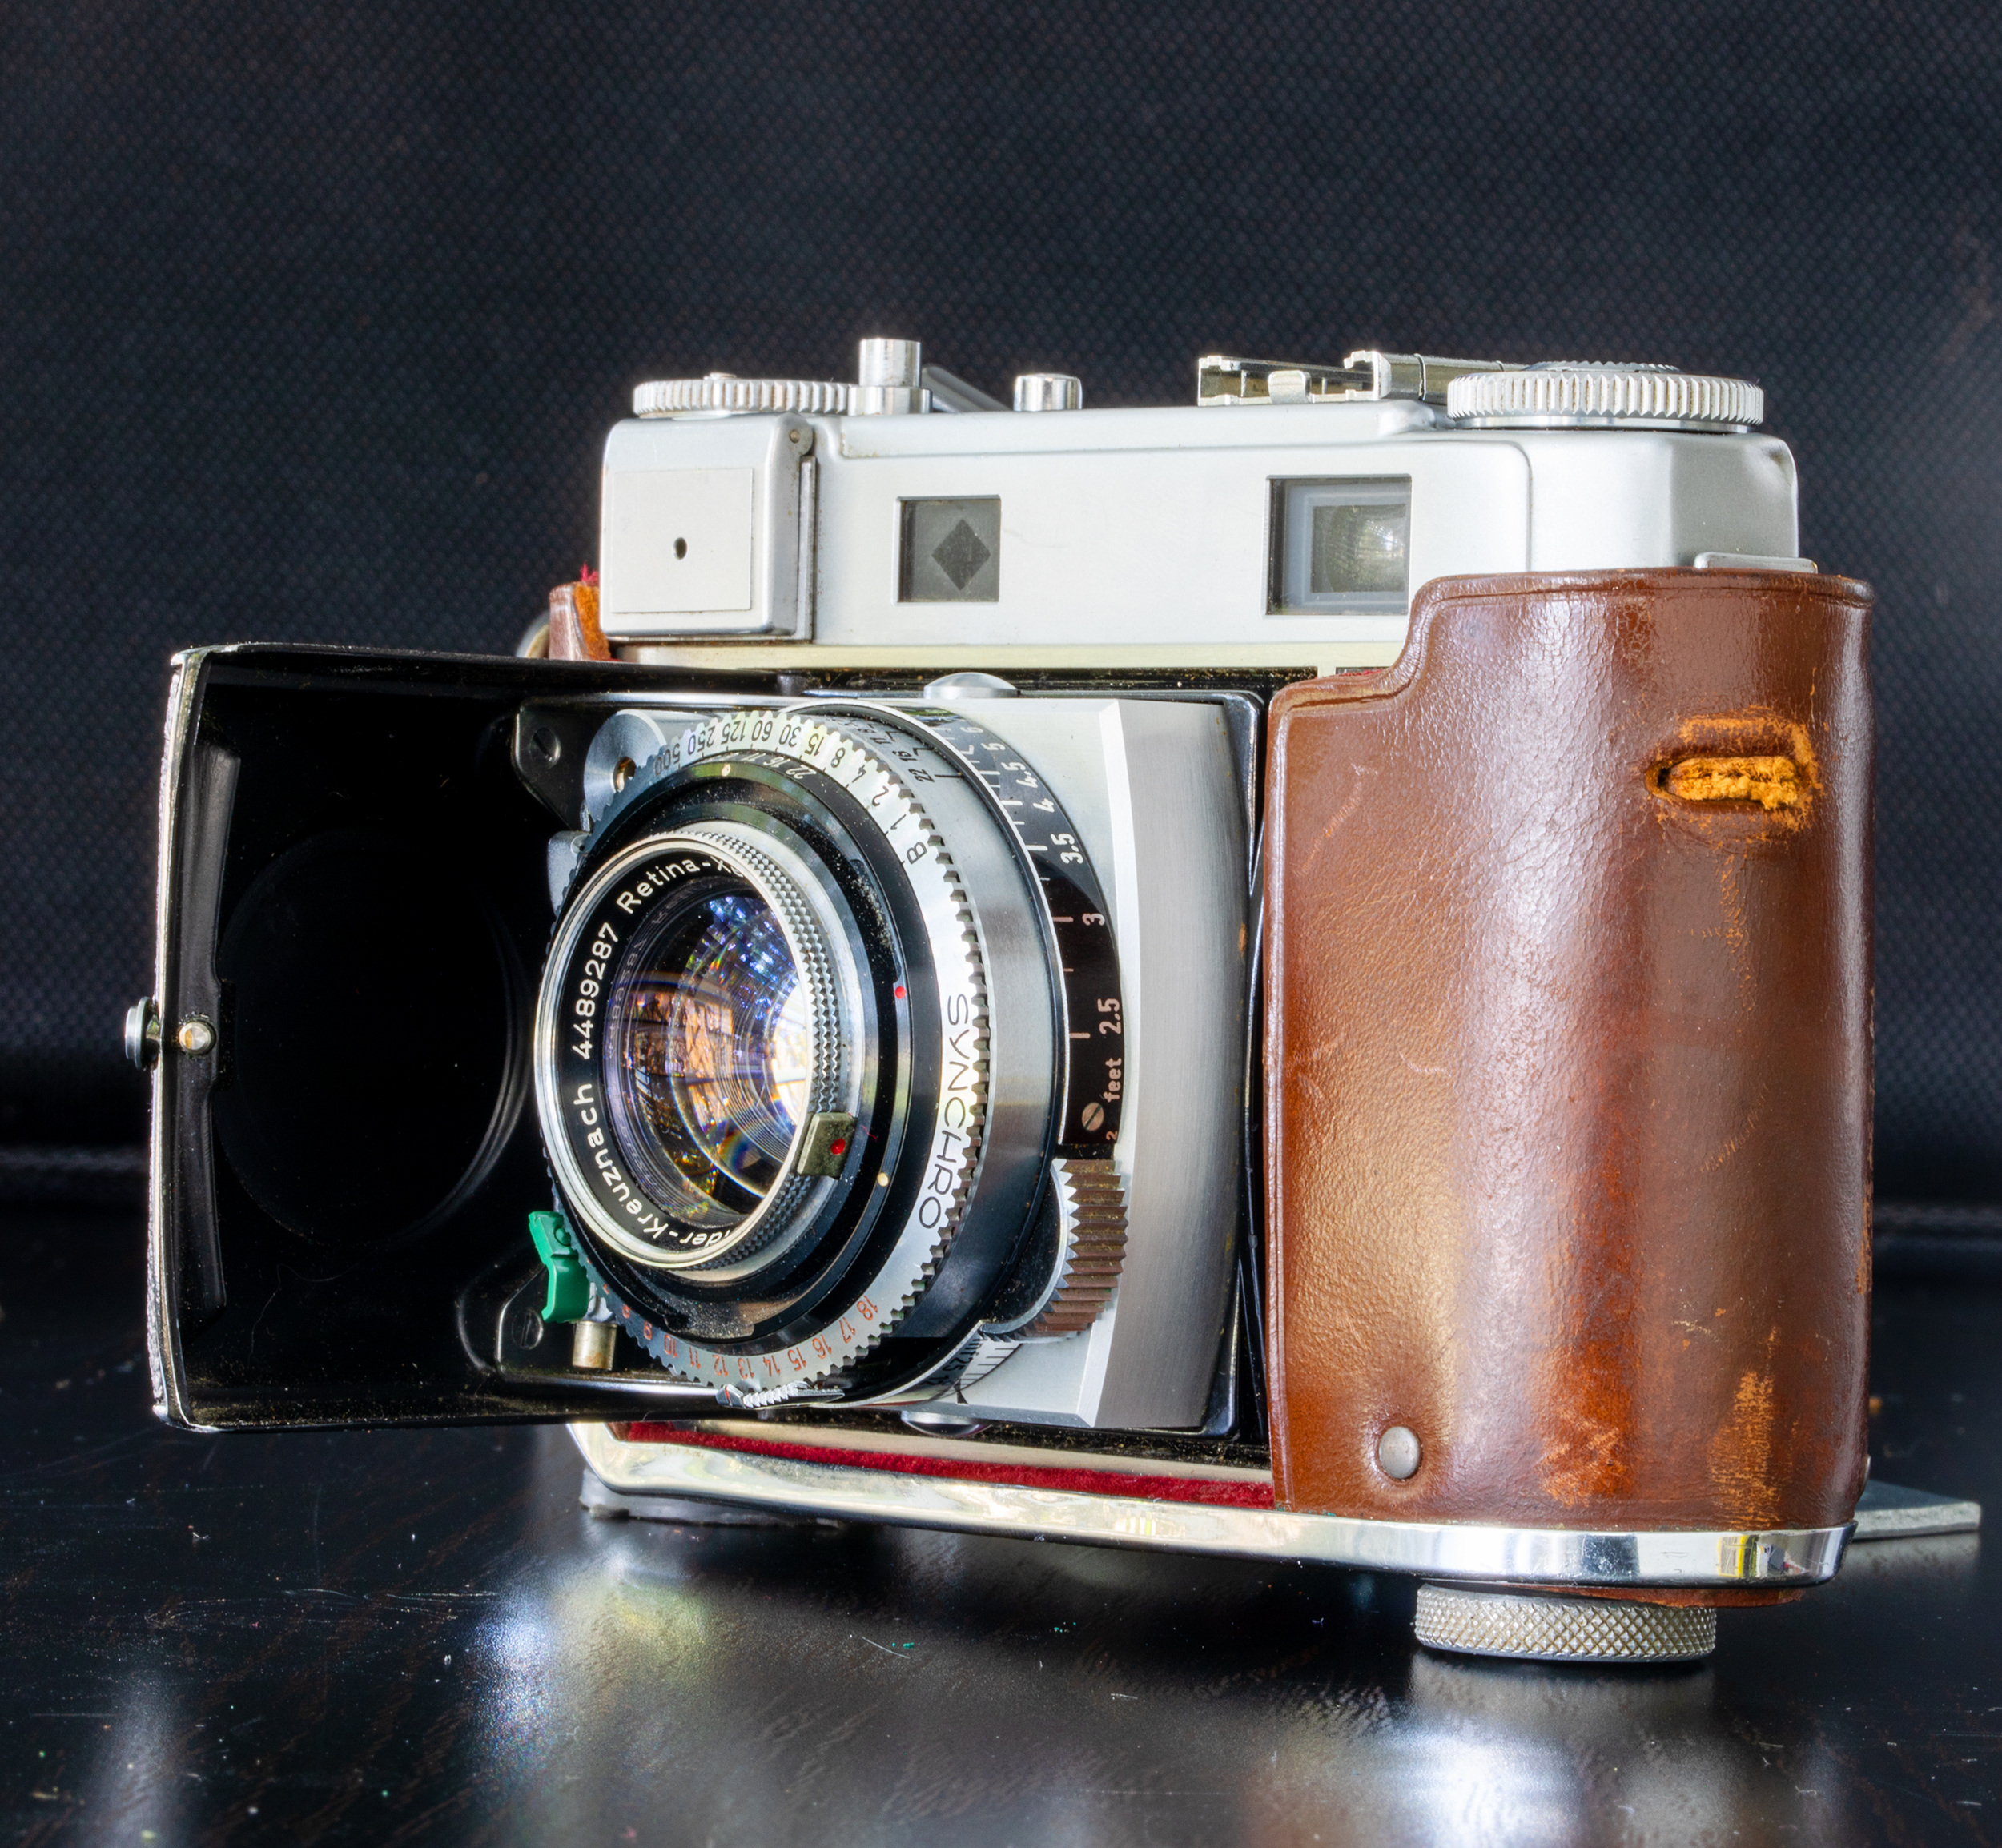 You know that camera you inherited from your gramps or the one you got at that garage sale? If you buy film for it, we'll show you how to shoot it! (If you are not sure that film is available, call us.